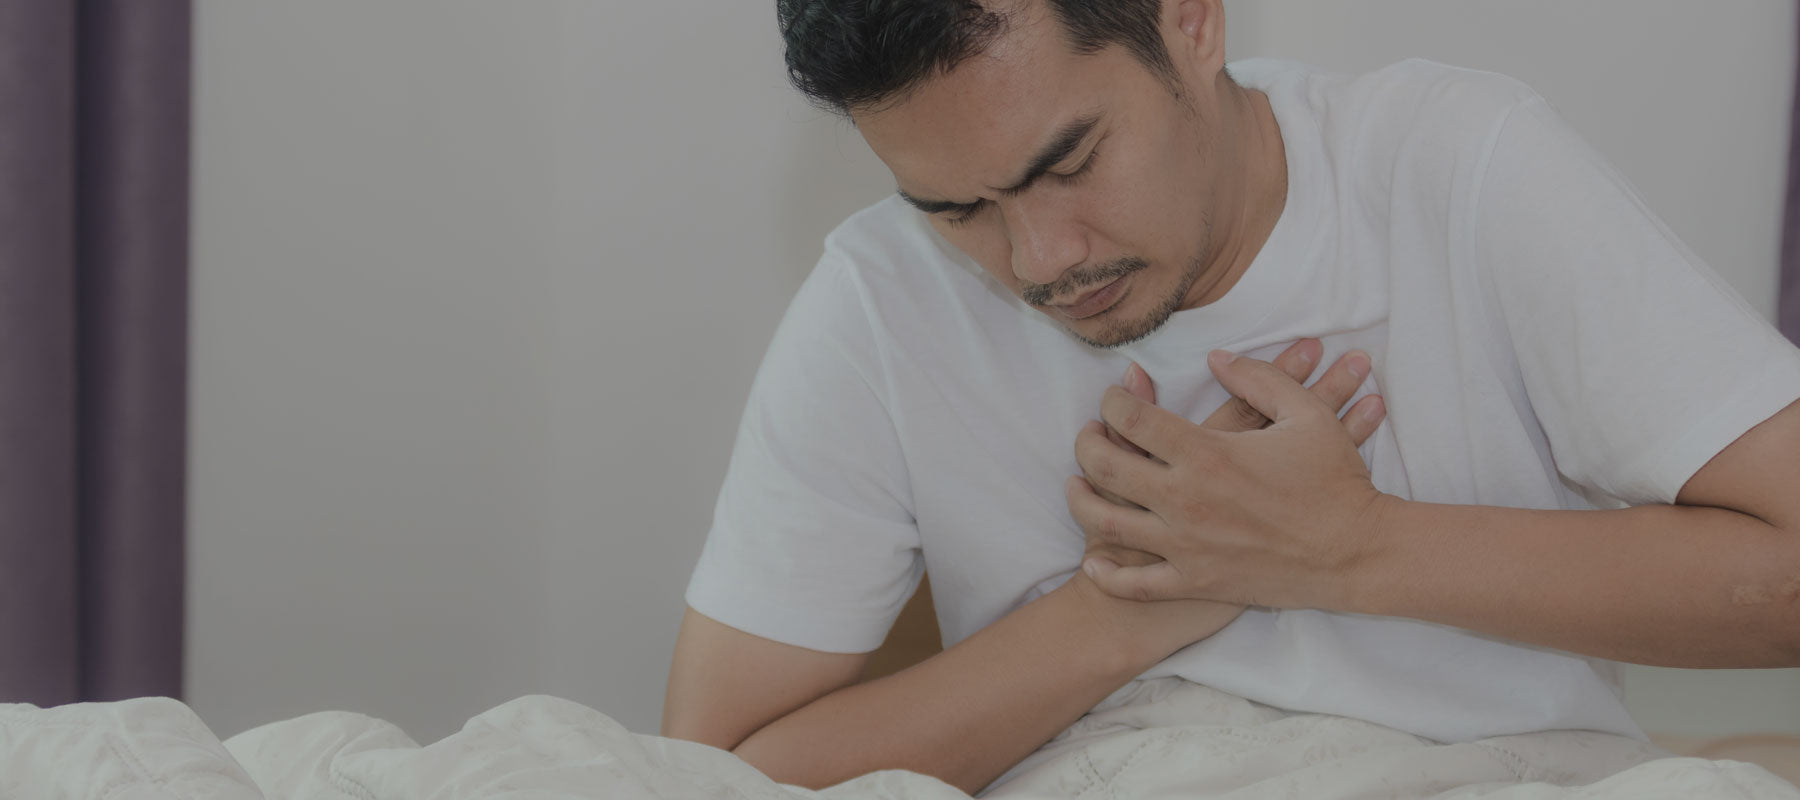 How to Sleep With Acid Reflux and GERD